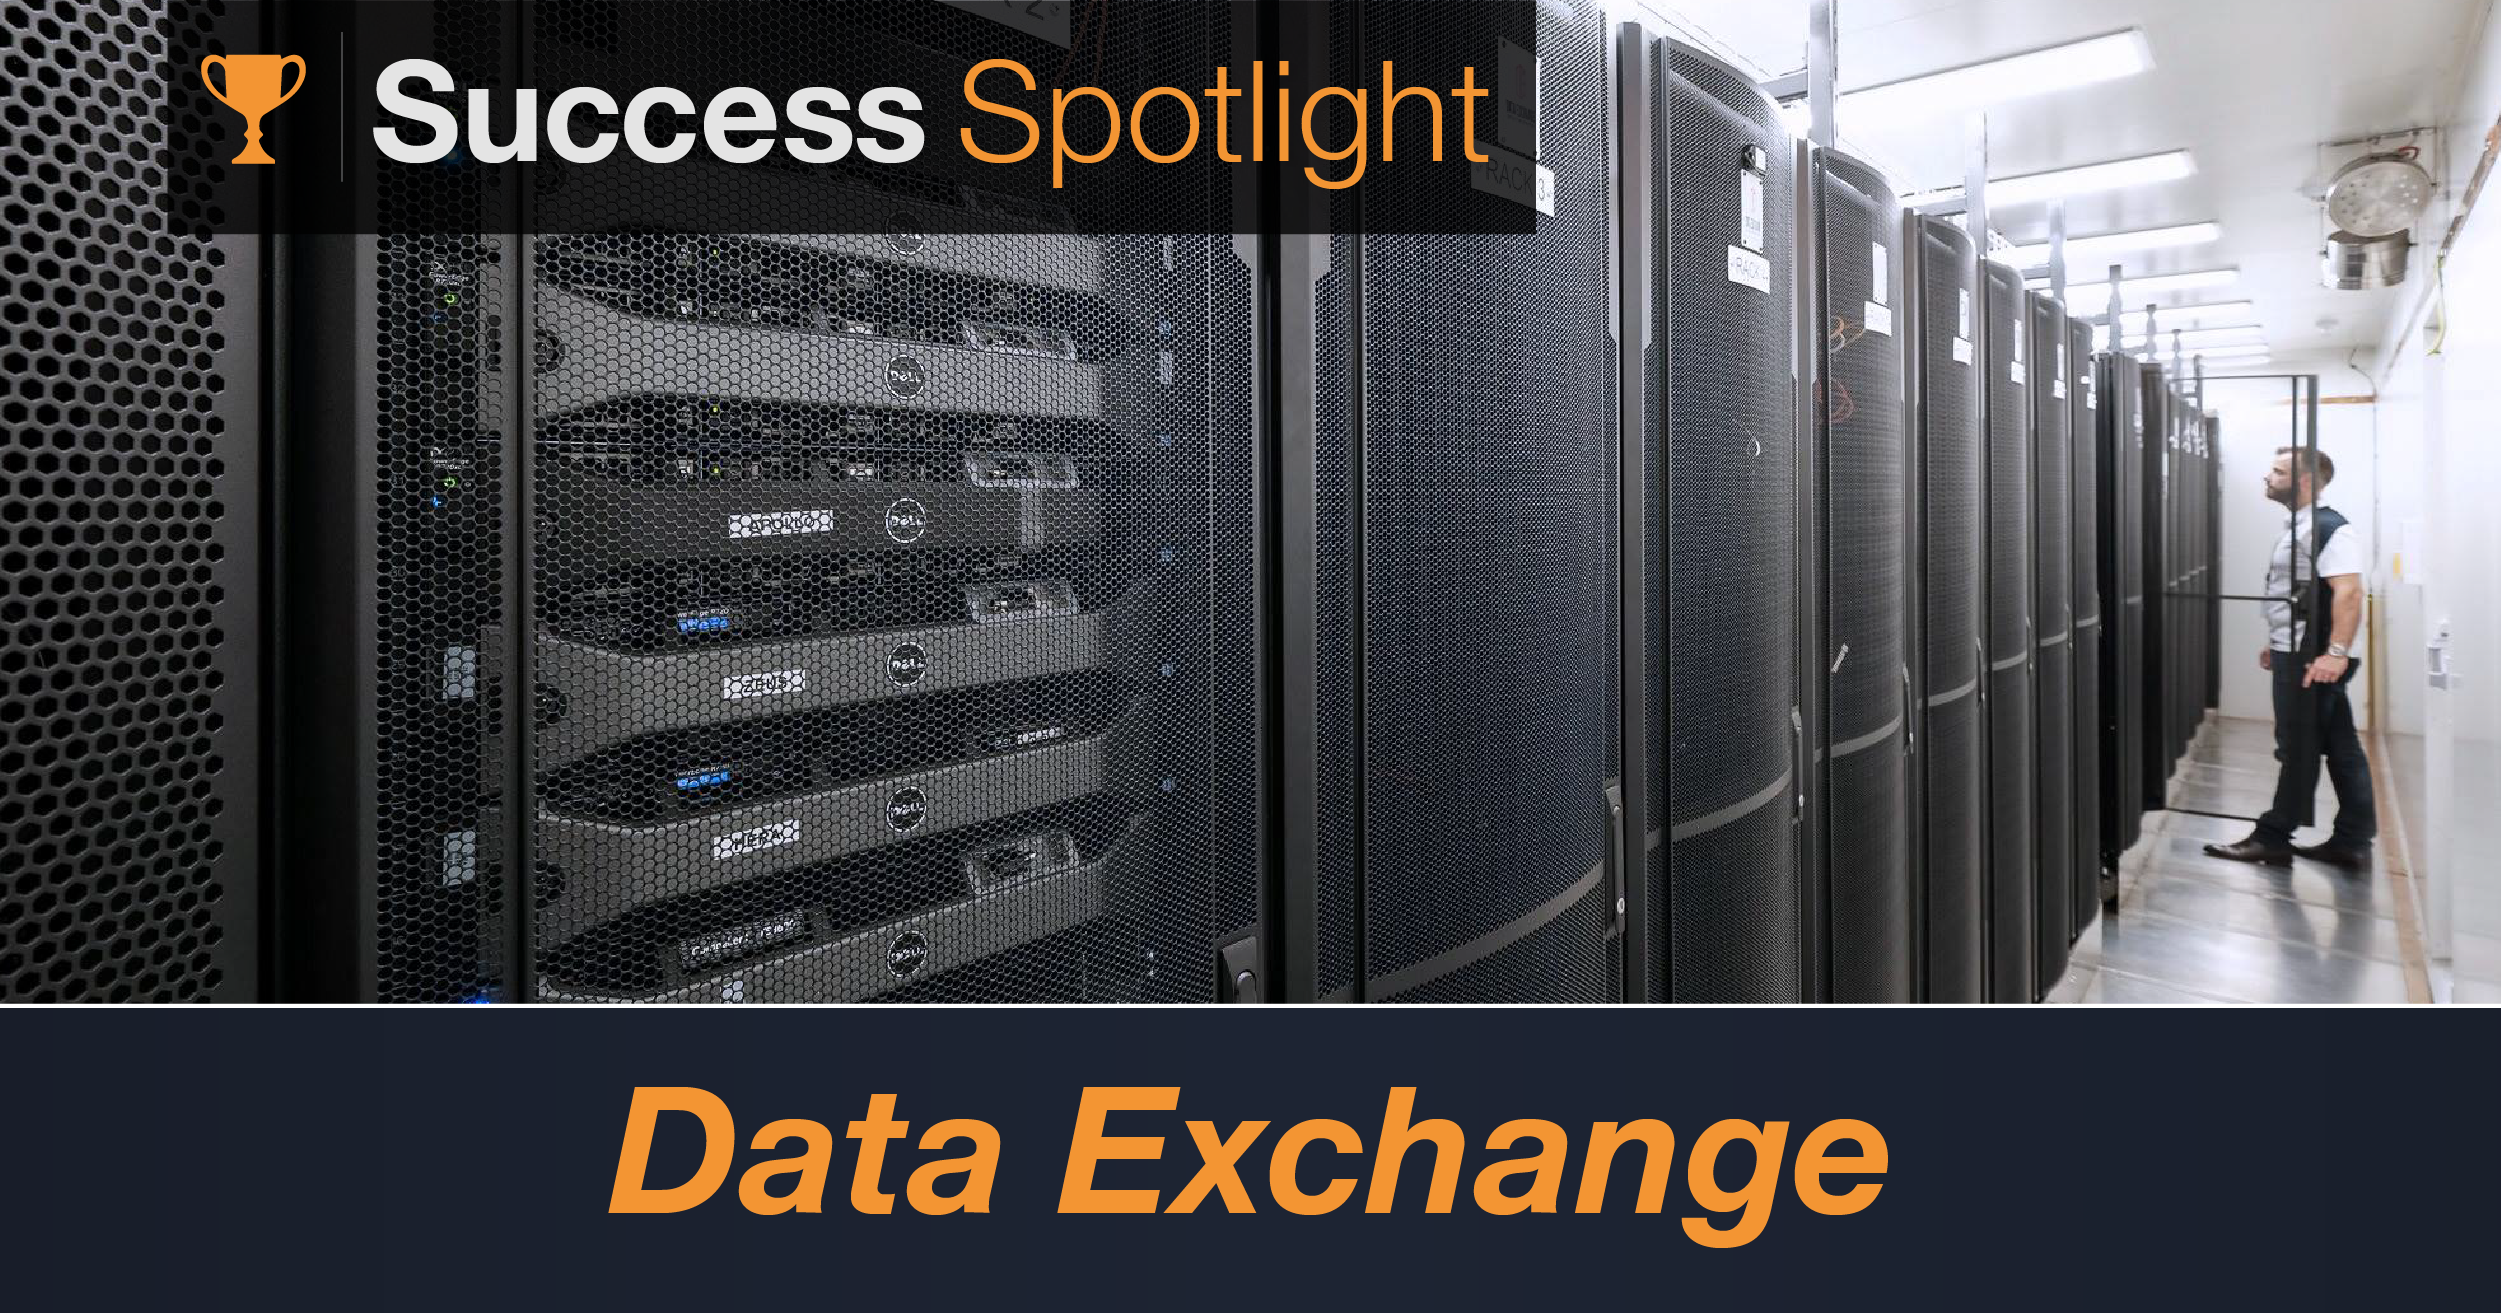 Success Spotlight: Data Exchange